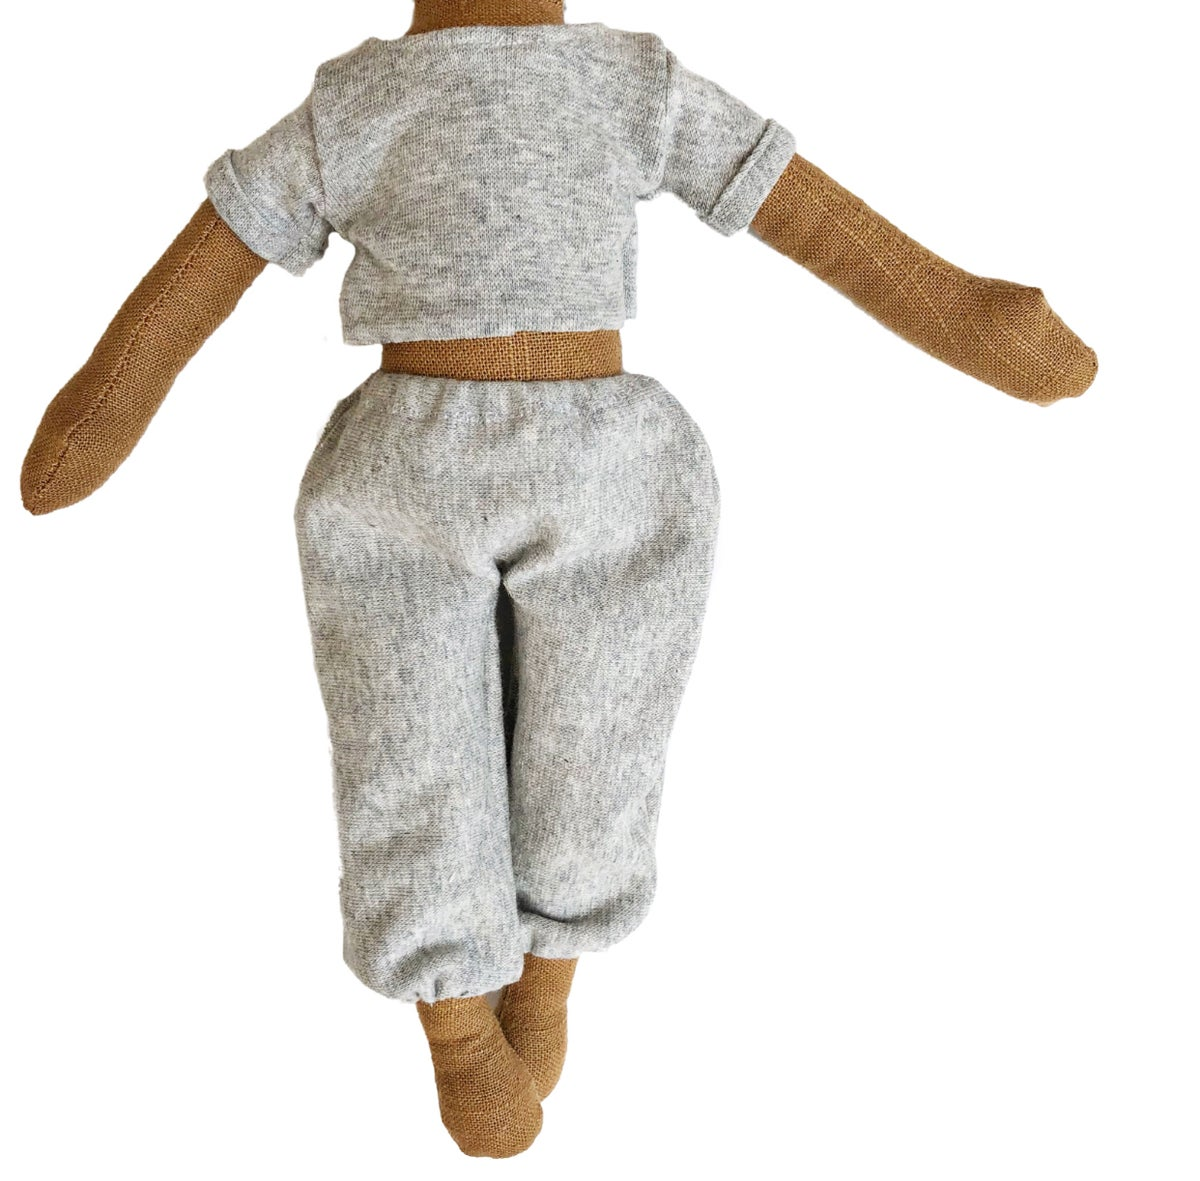 Grey sweats cut off set - Doll Accessory (PLEASE NOTE: THIS ORDER WILL SHIP ON OR BEFORE NOV 30TH)